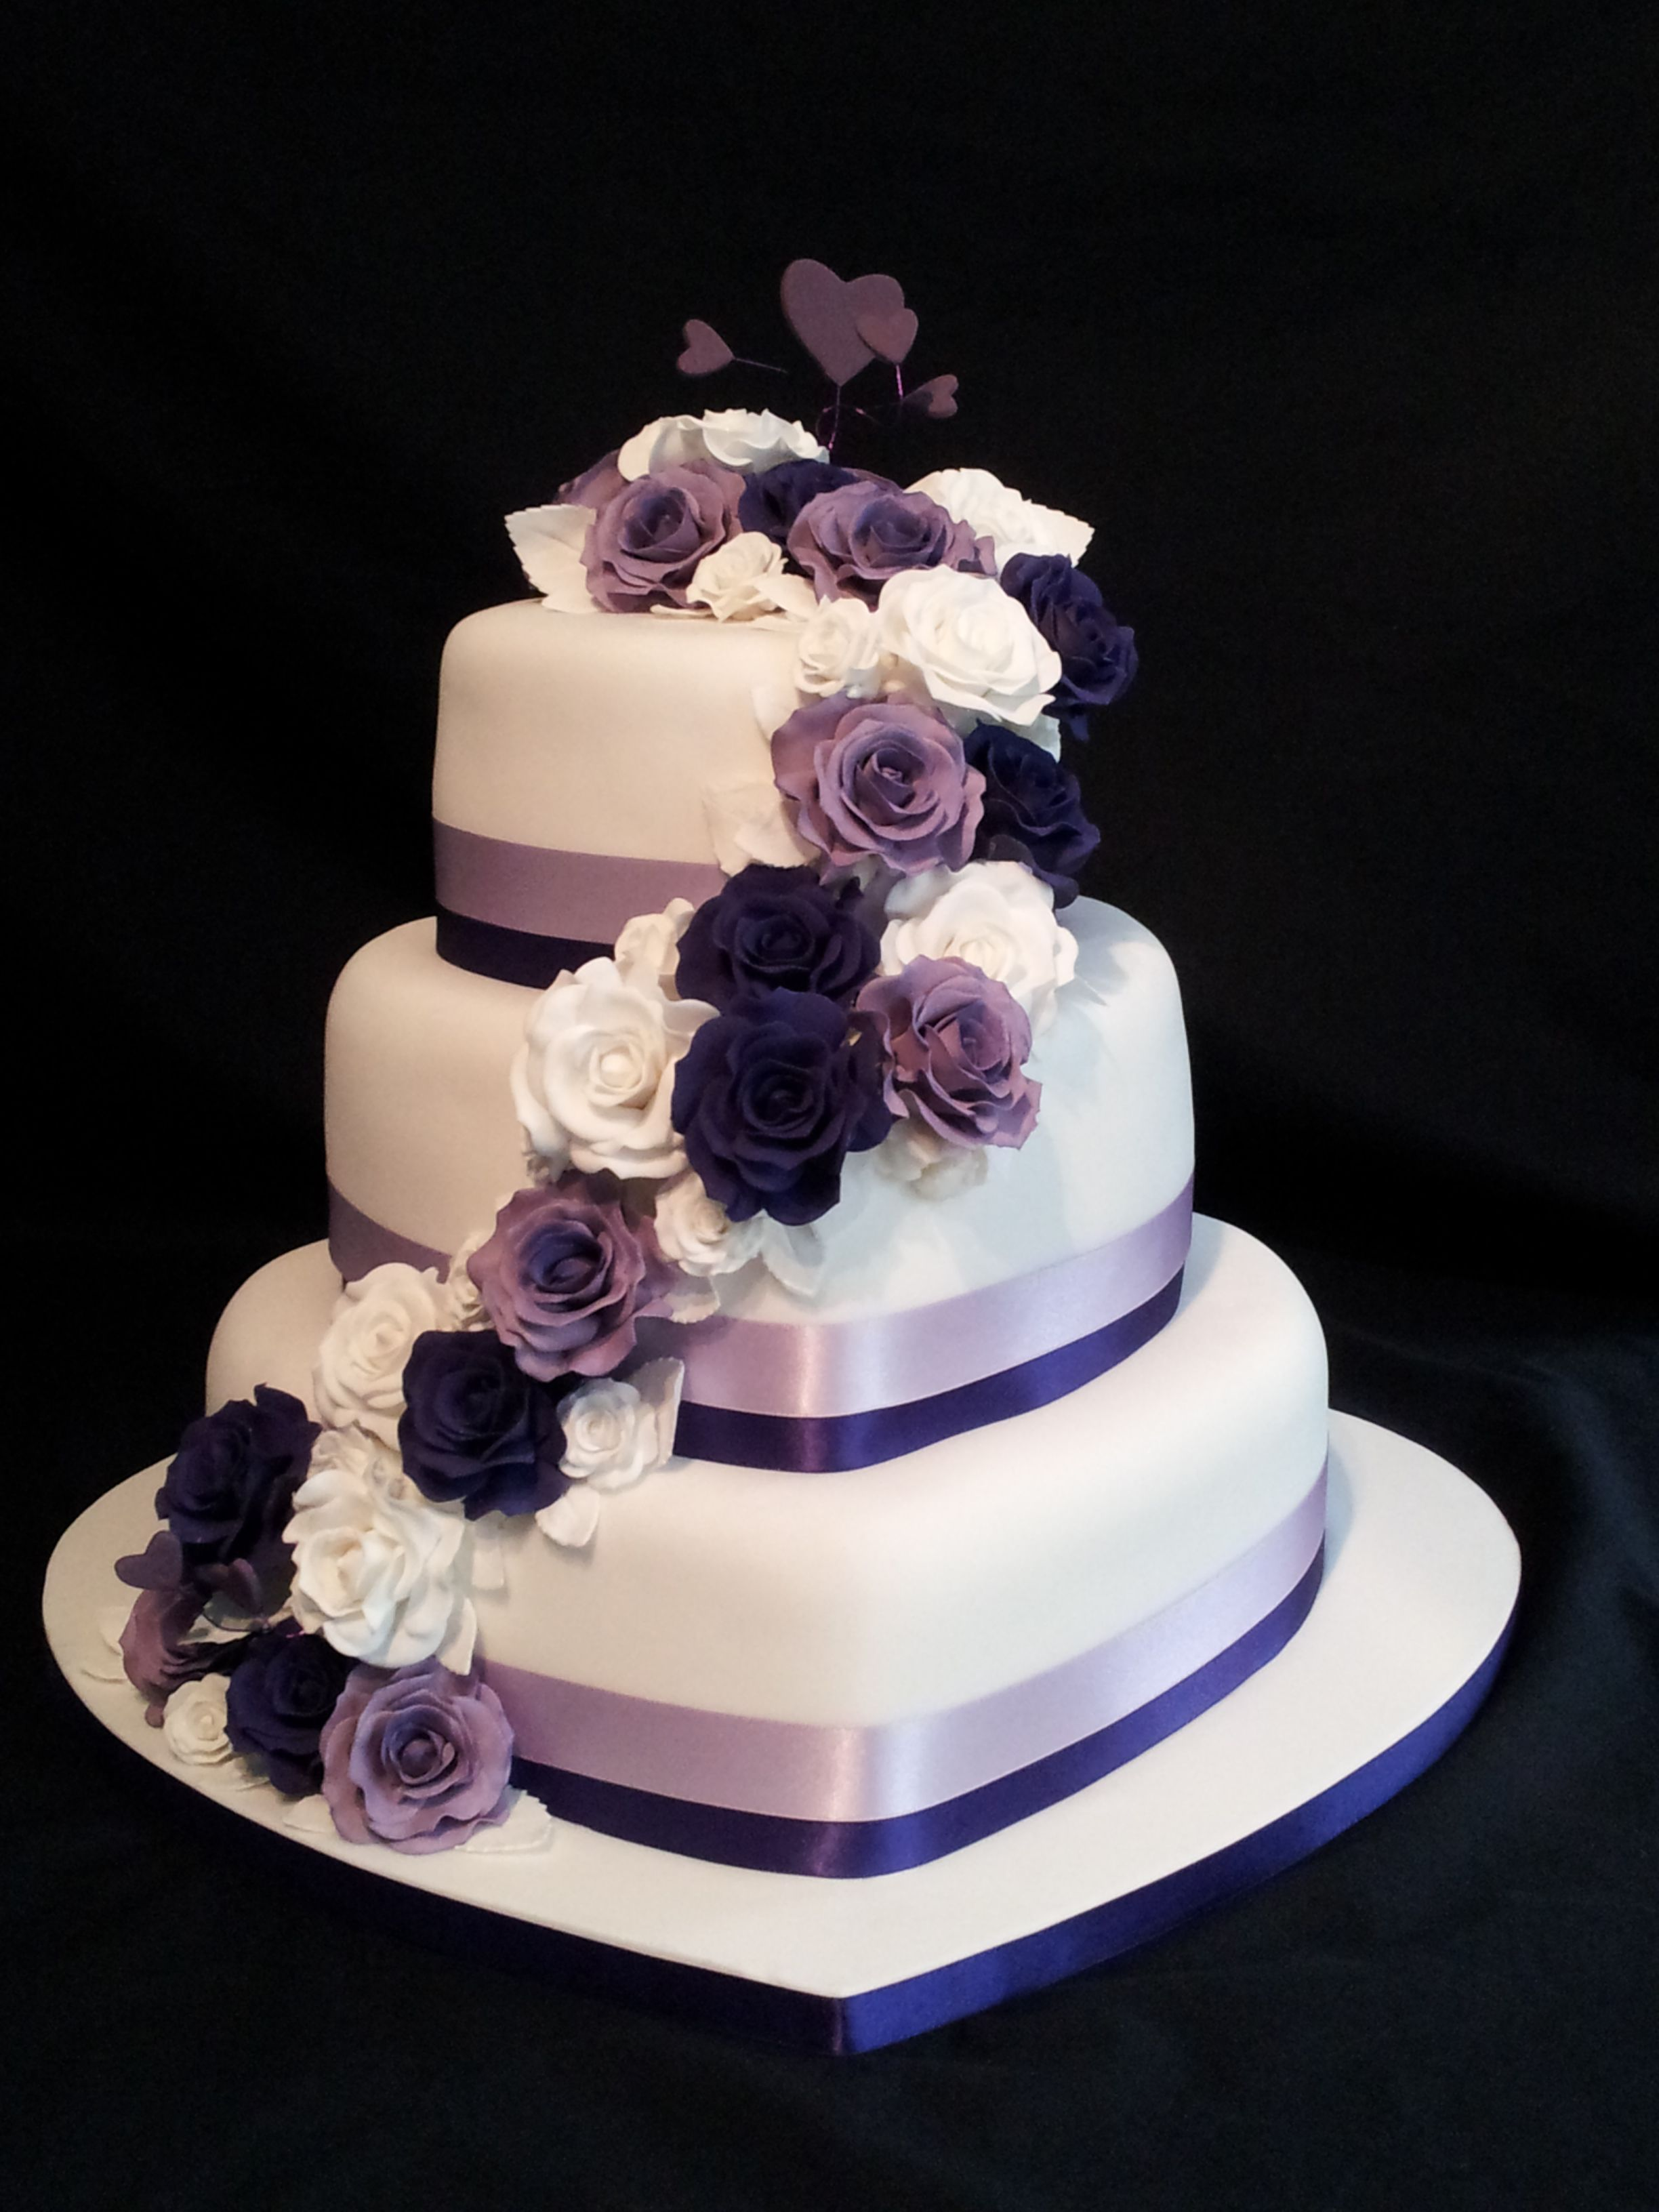 3 Tier Heart Shaped Wedding Cake Roses Cascading Down With A